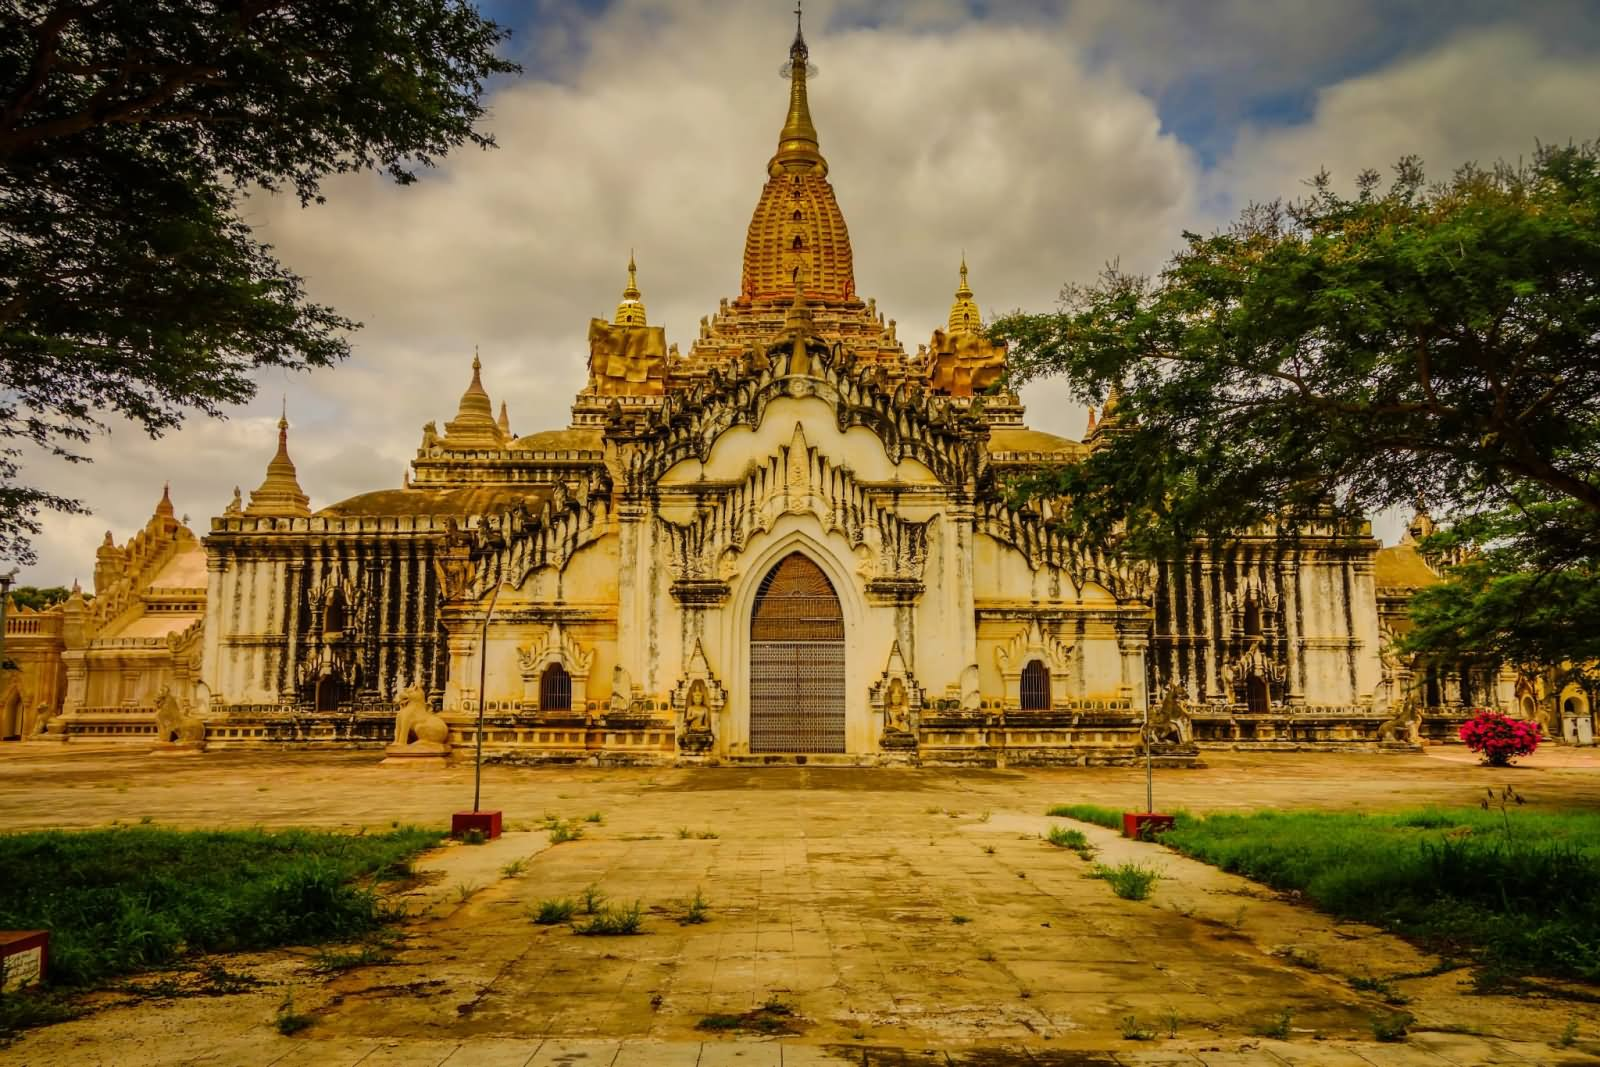 Front View Image Of The Ananda Temple, Myanmar